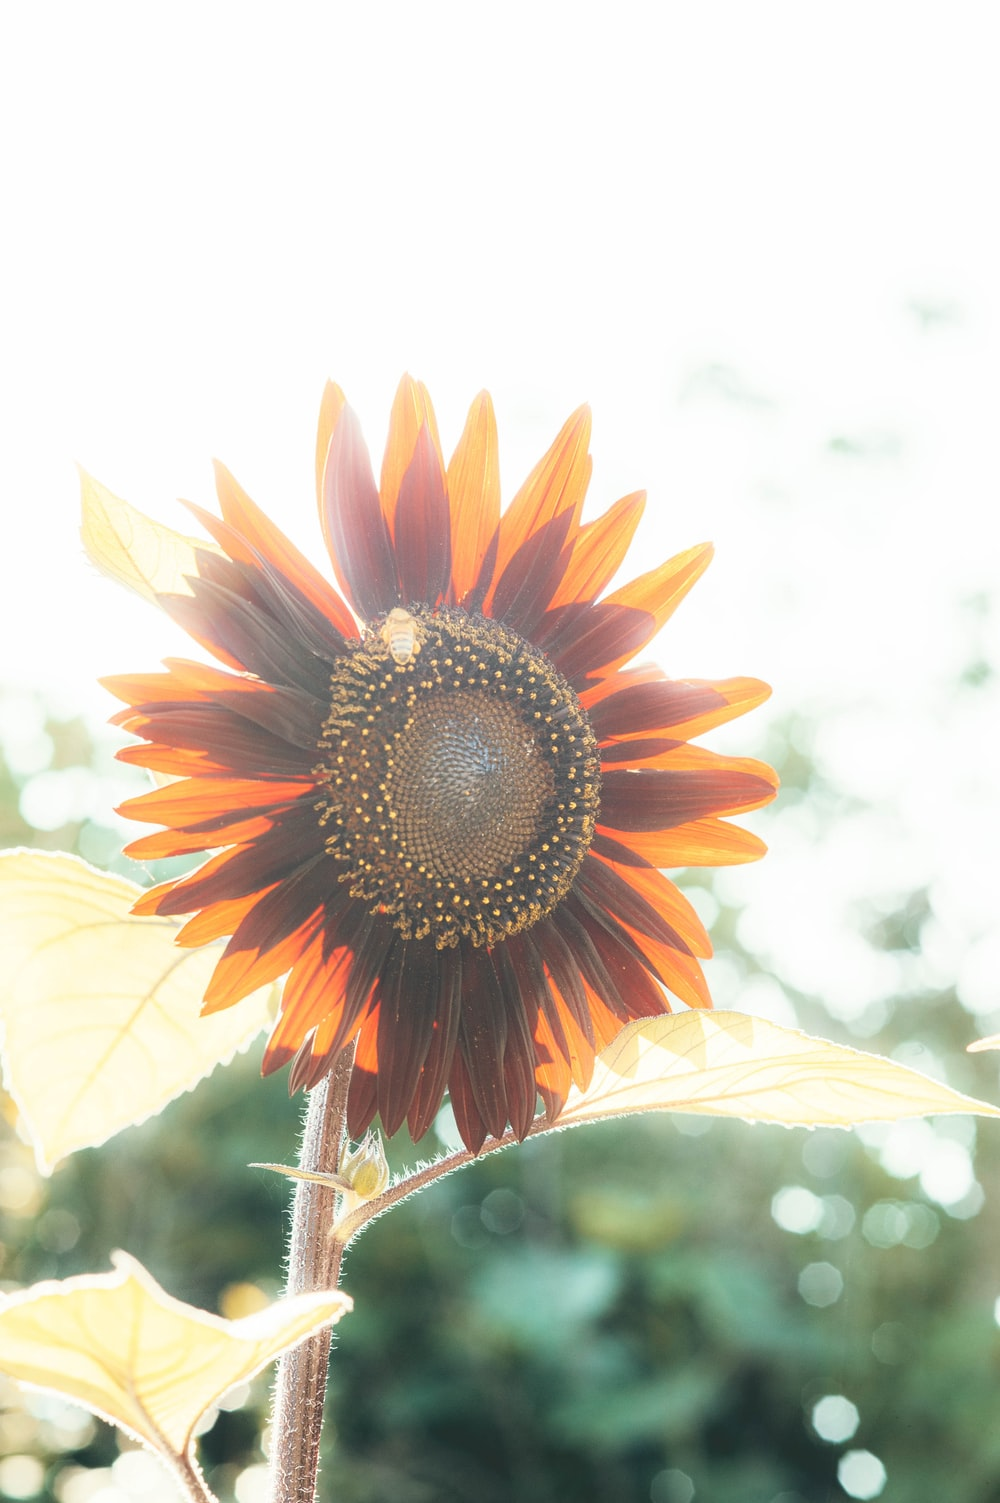 orange sunflower in close up photography